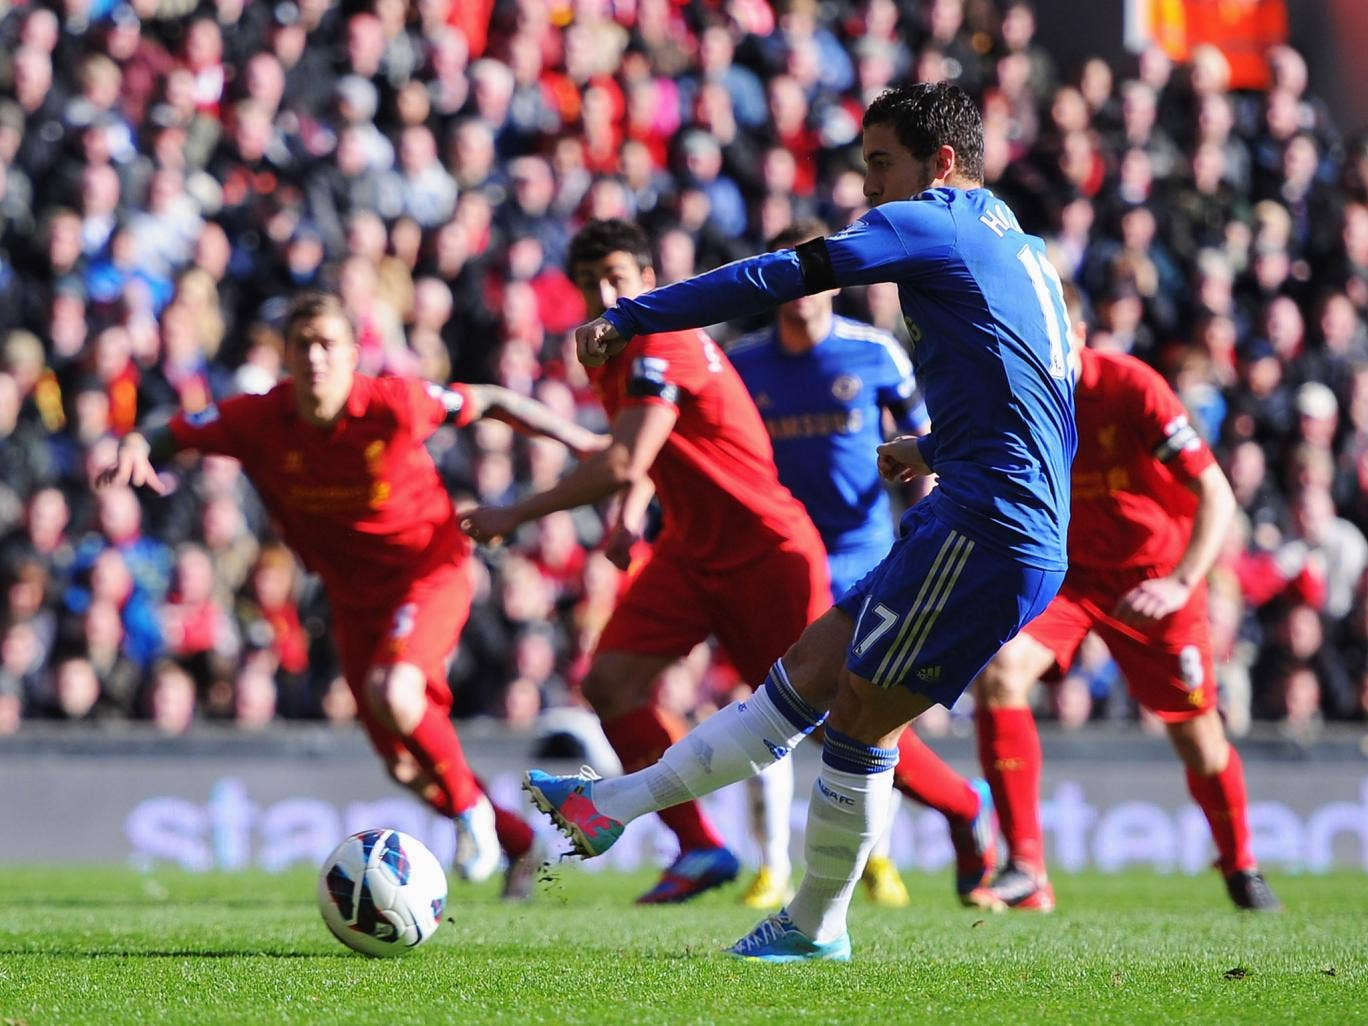 Chelsea's Eden Hazard converts from the penalty spot